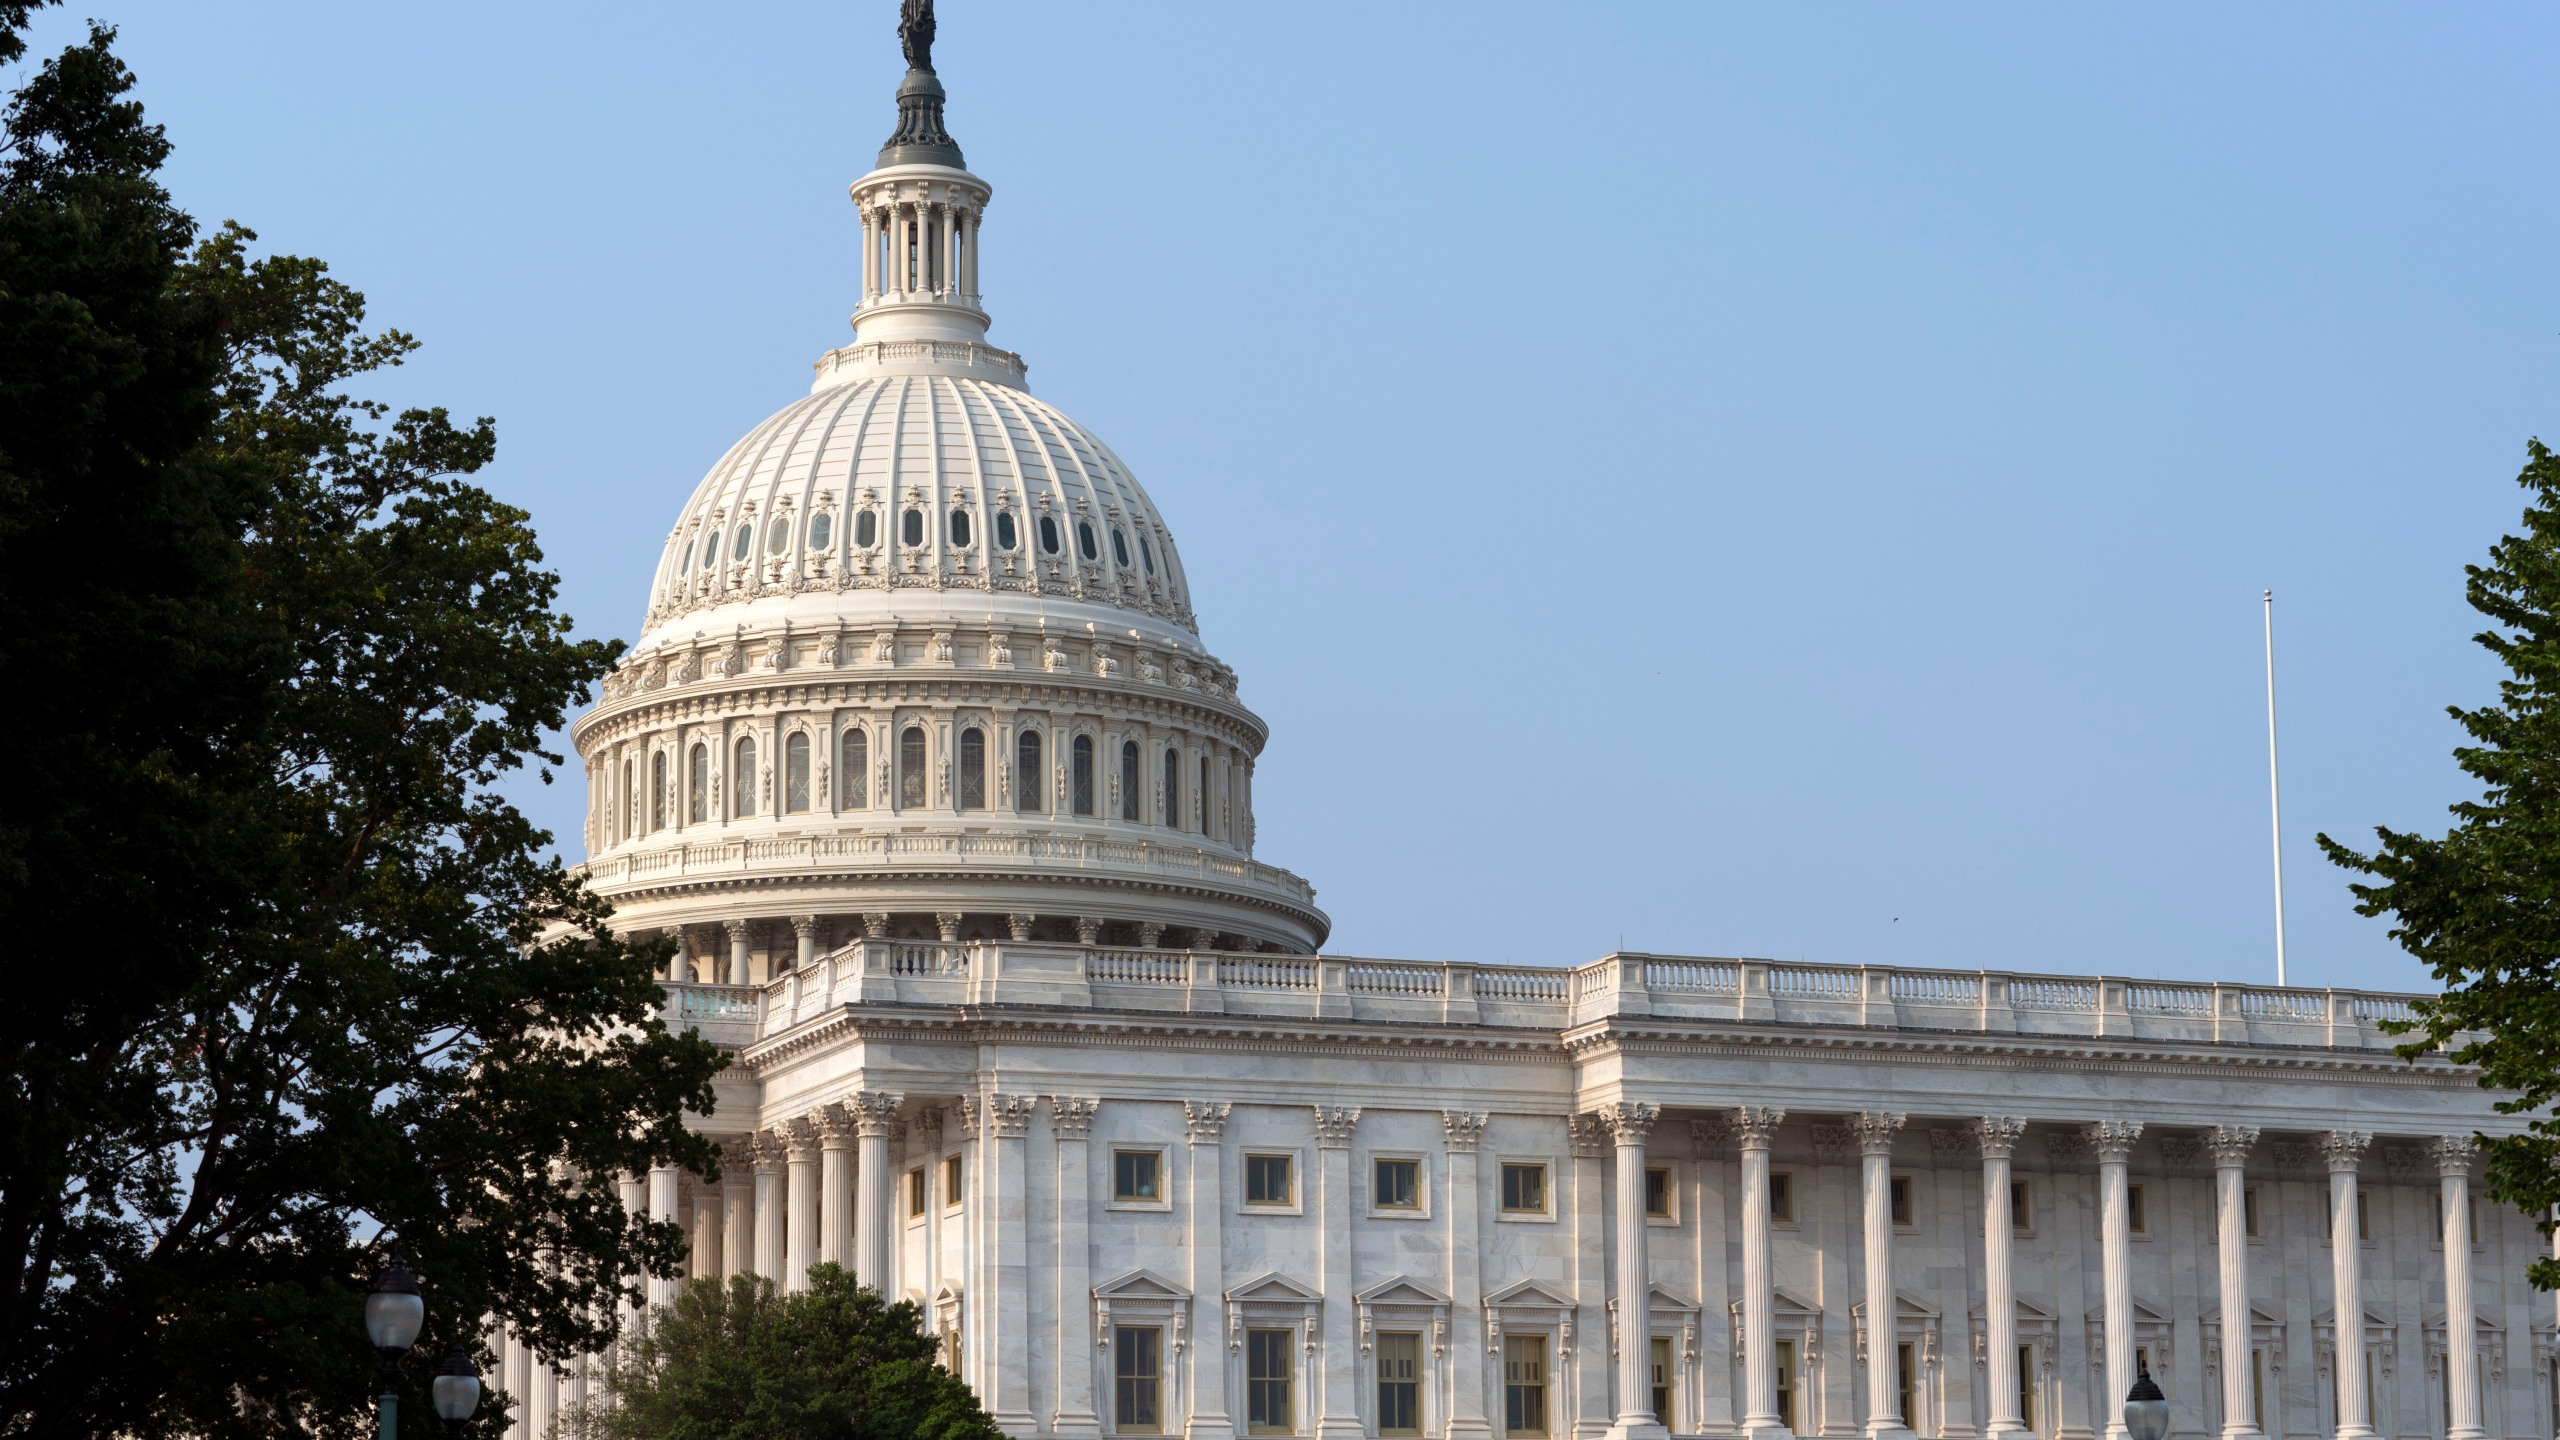 The U.S. Capitol is seen in Washington, Tuesday, July 20, 2021. (AP Photo/Jose Luis Magana)